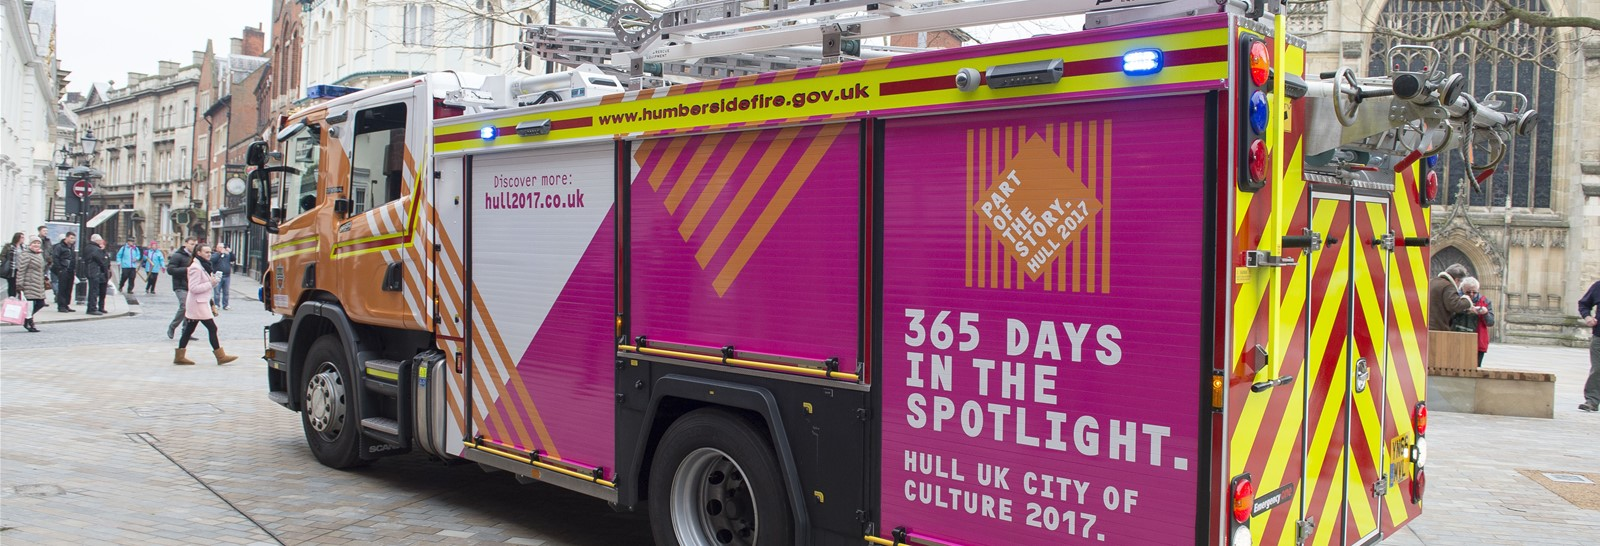 Humberside Fire and Rescue Service